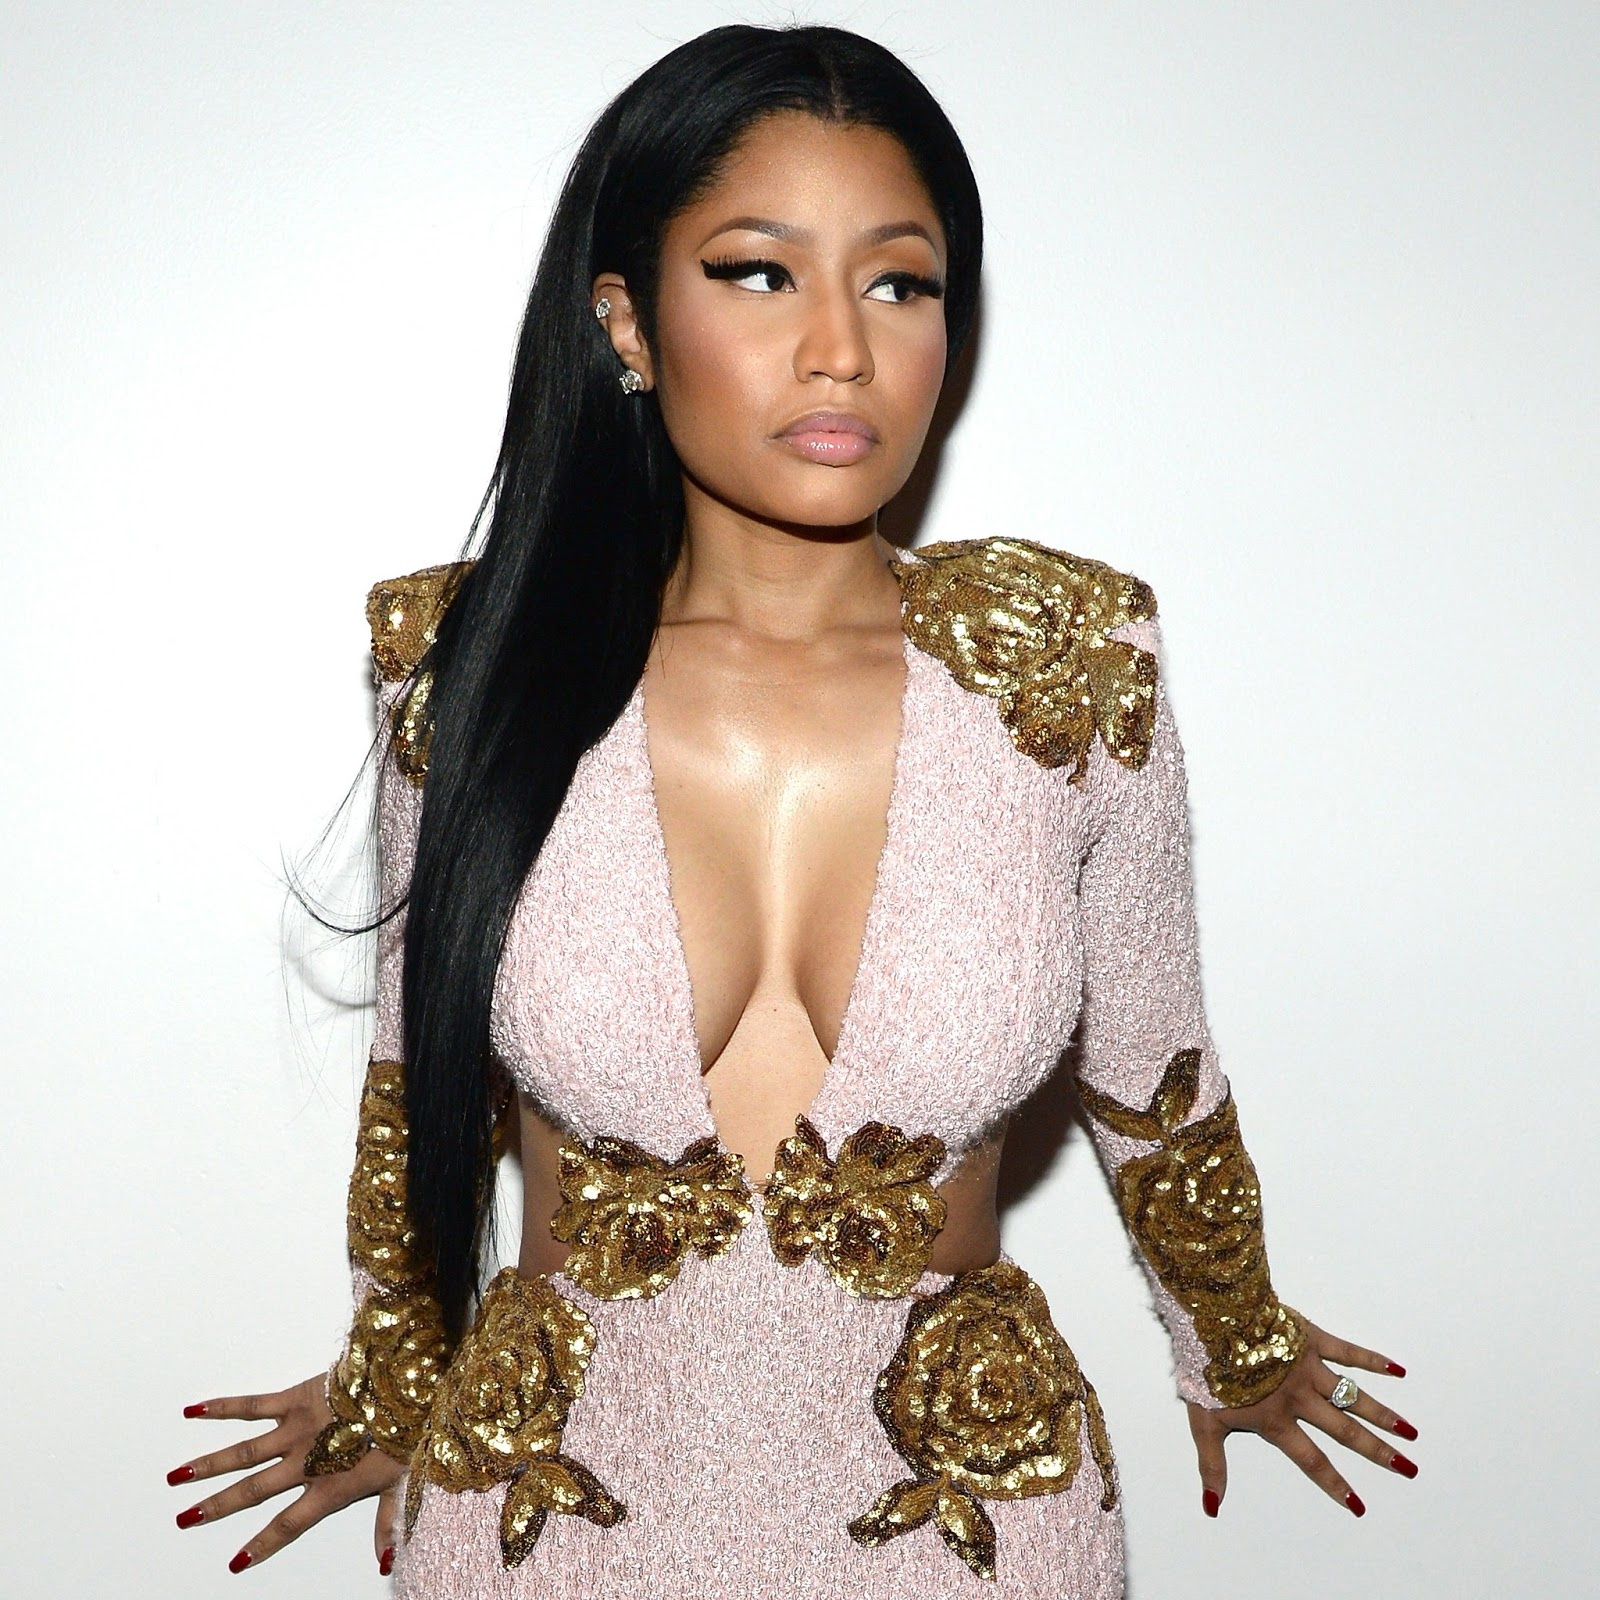 Nicki minaj hd wallpapers images and photos download wallpaper hd nicki minaj is an american pop singer songwriter and actress i am providing you nicki minaj best 2017 images and you will free download them all your voltagebd Image collections